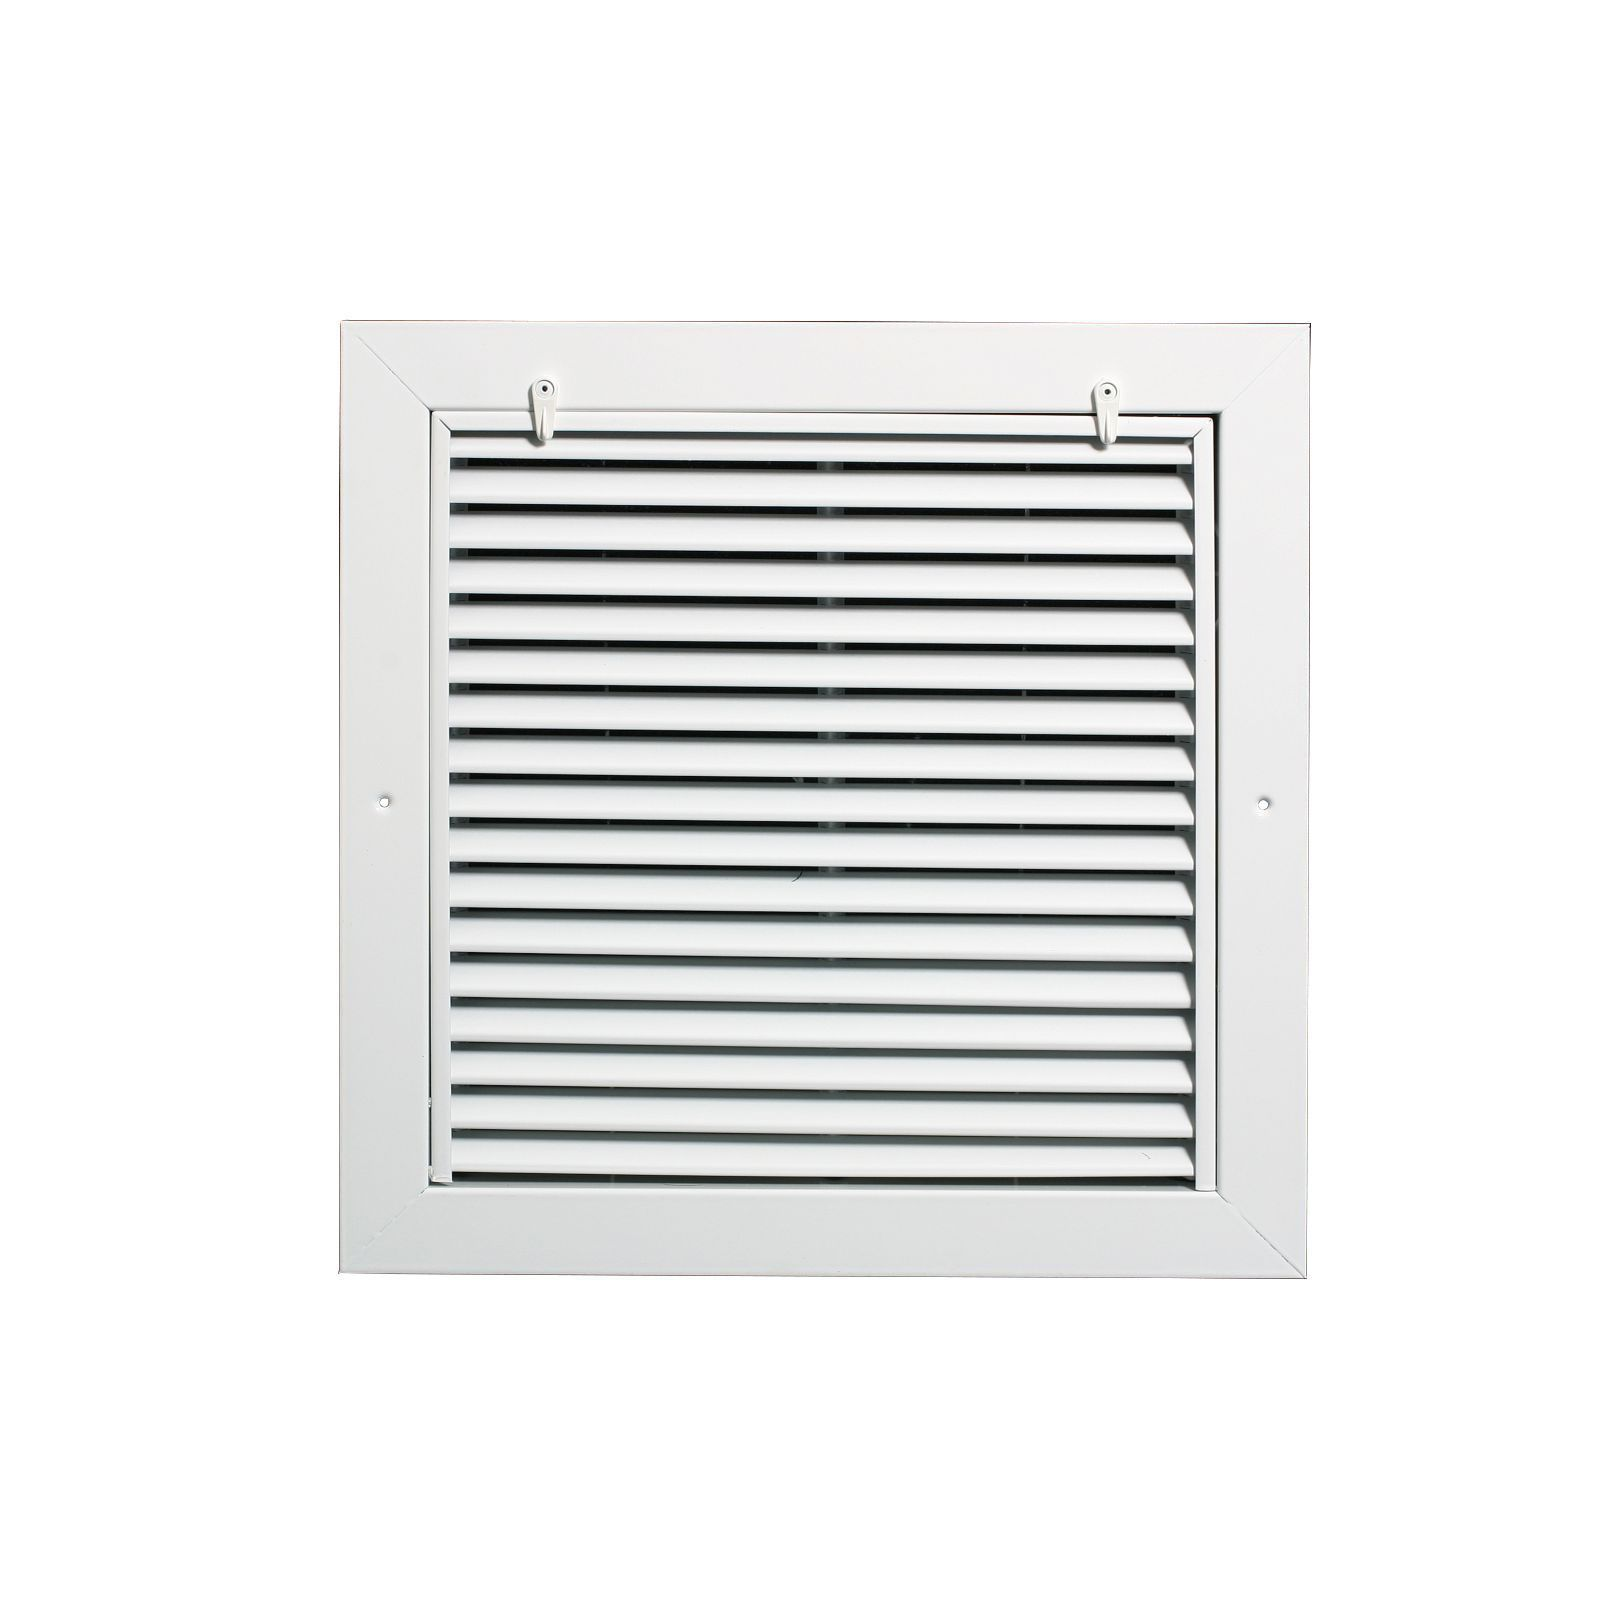 "Grille Tech RAFGS2412 - Aluminum Return Air Filter Grille, Grille Size 24"" X 12"" White"